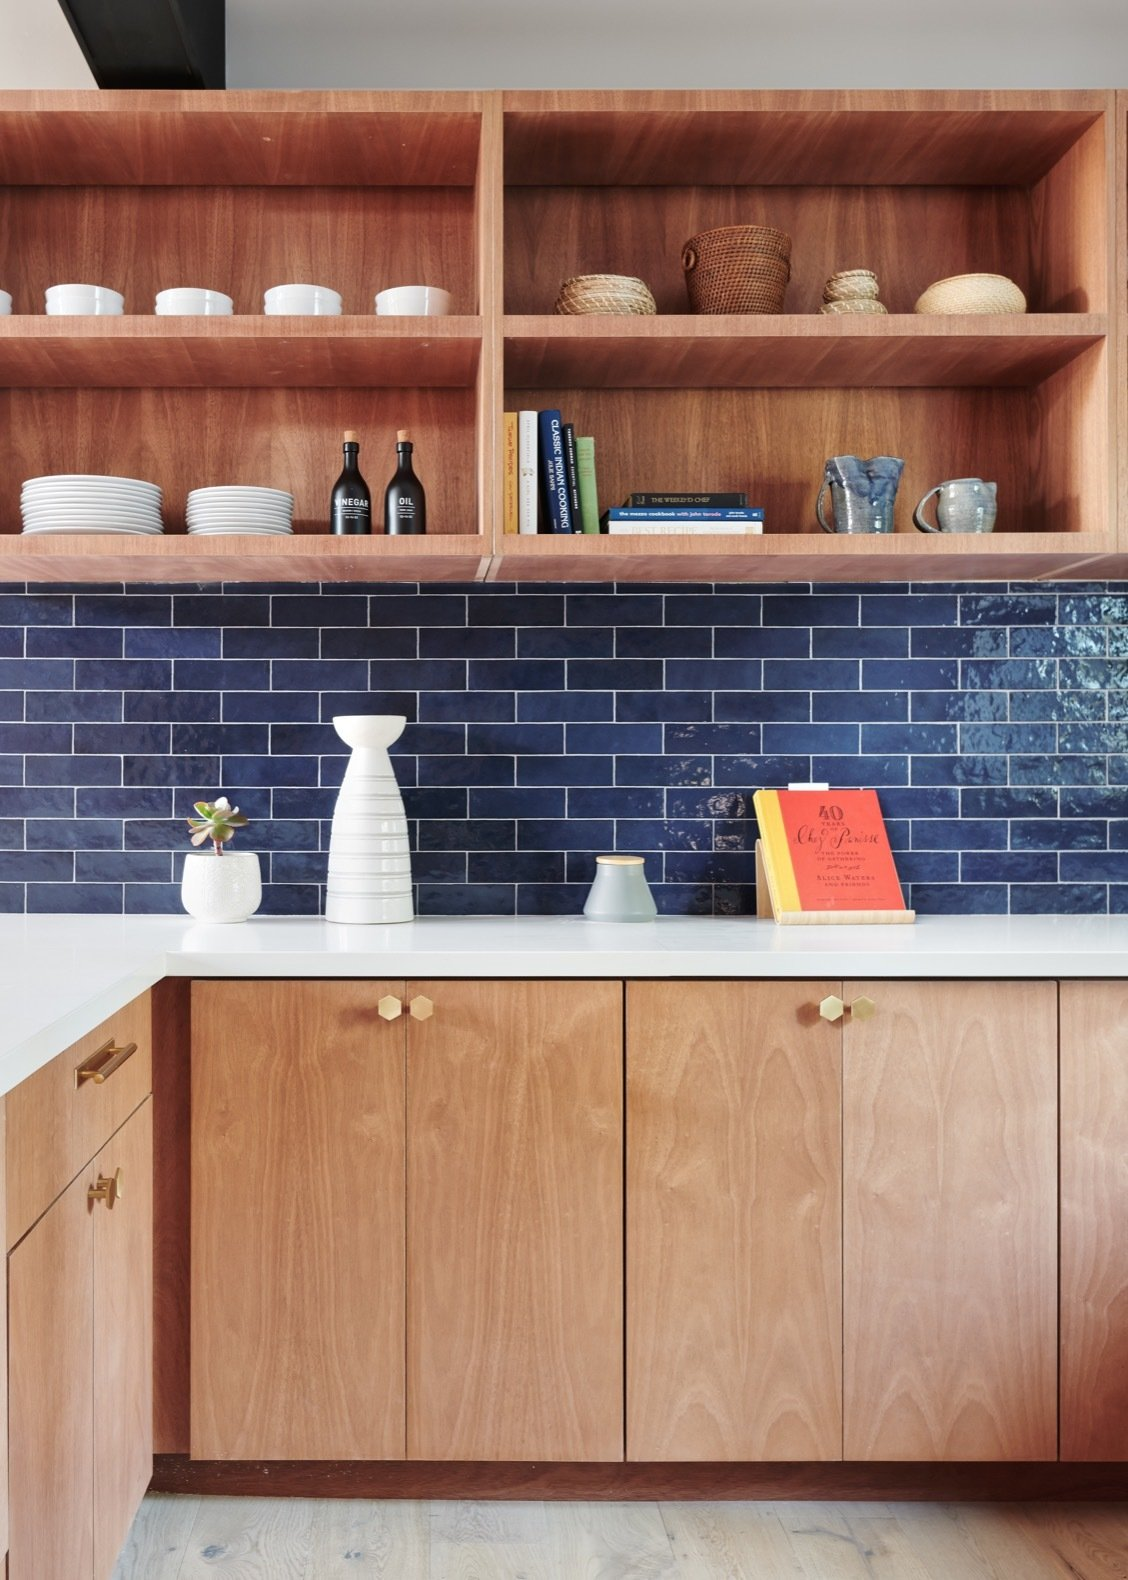 The updated kitchen features an Elite Tile backsplash, white quartz countertops, and new plumbing and lighting.  Photo 16 of 25 in Before & After: A Midcentury Wrapped Around an Oak Tree Turns Over a New Leaf